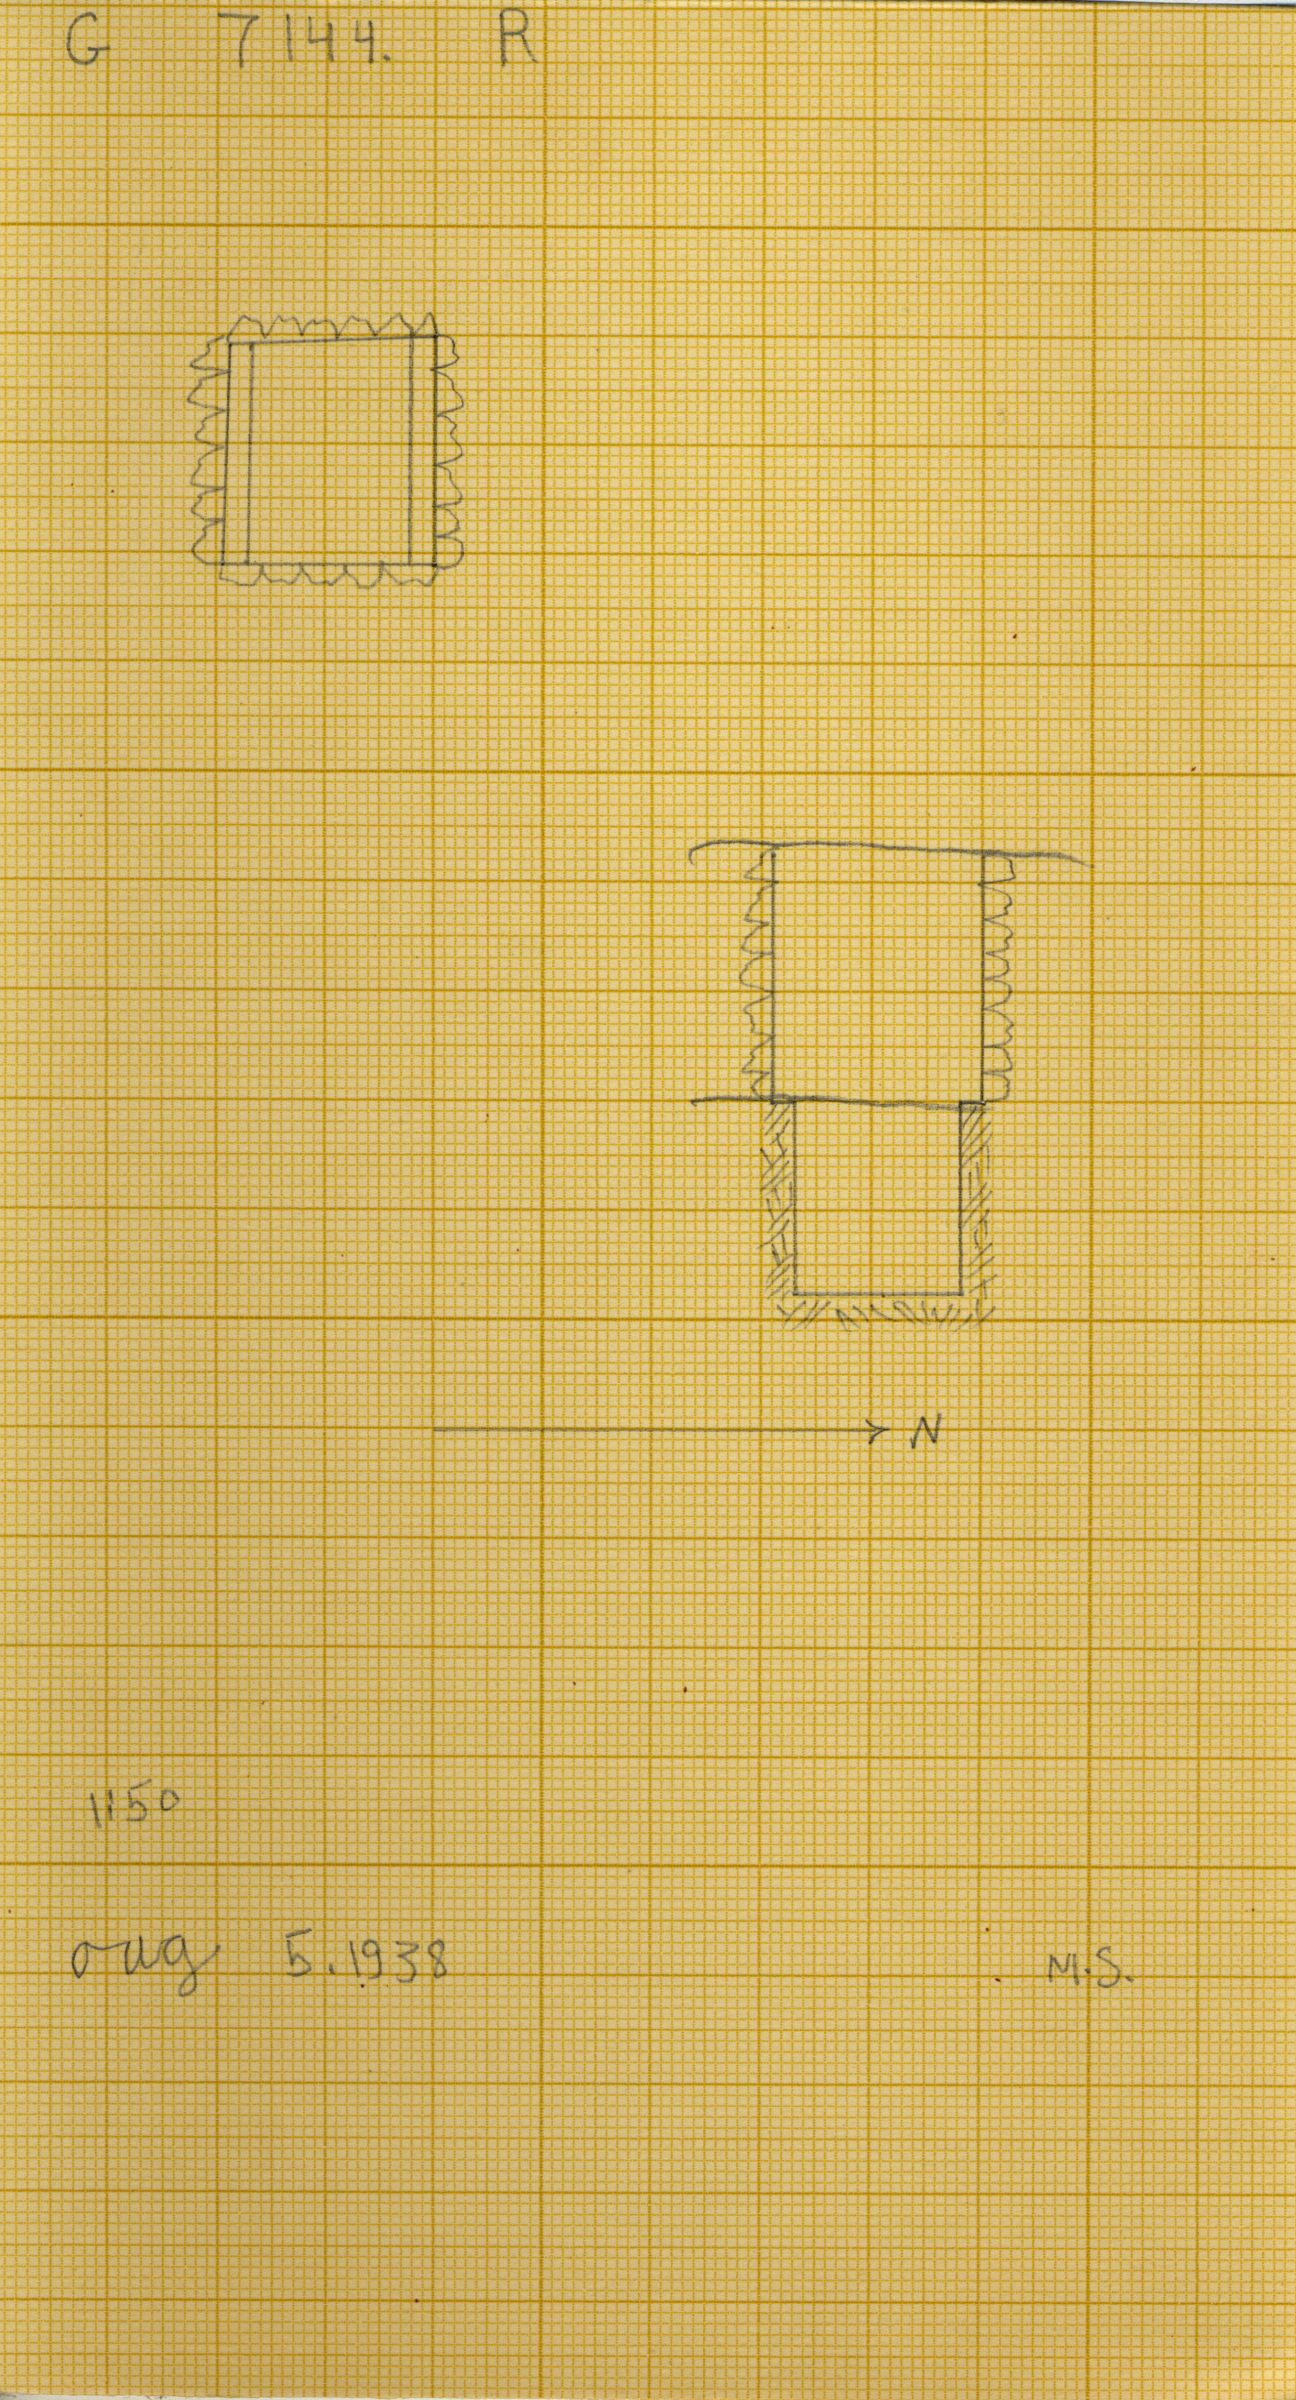 Maps and plans: G 7144, Shaft R